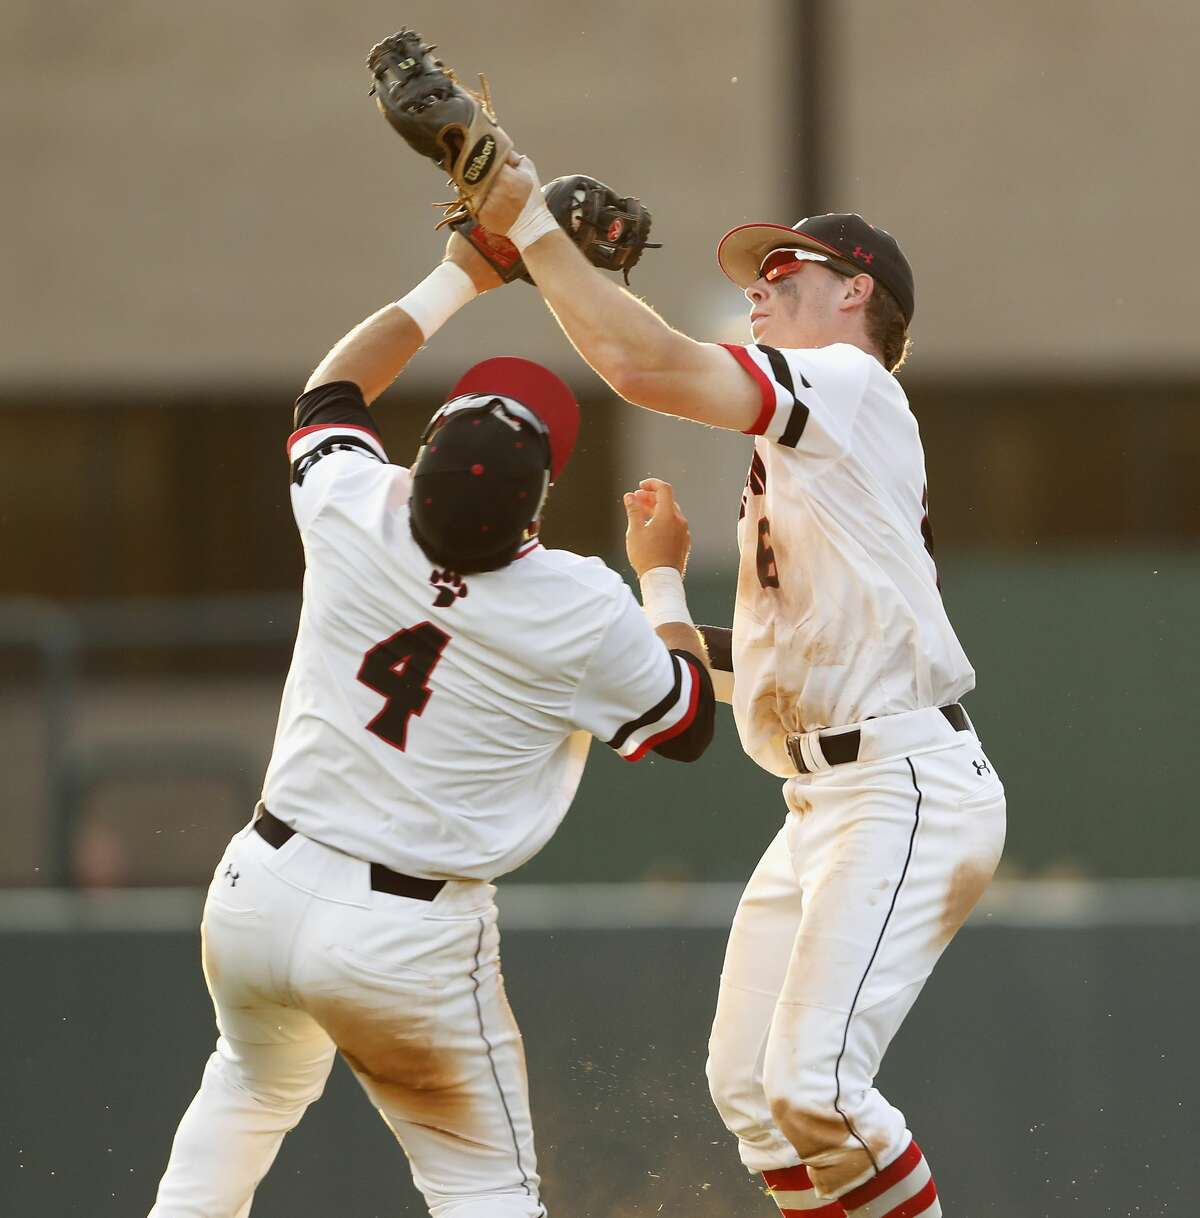 Davidson catcher Eric Jones (6) and shortstop Alec Acosta (4) collide attempting to catch a fly ball in the eighth inning during the 2017 NCAA Super Regional baseball game between the Davidson Wildcats and the Texas A&M Aggies at Blue Bell Park on Saturday, June 10, 2017, in College Station, TX.